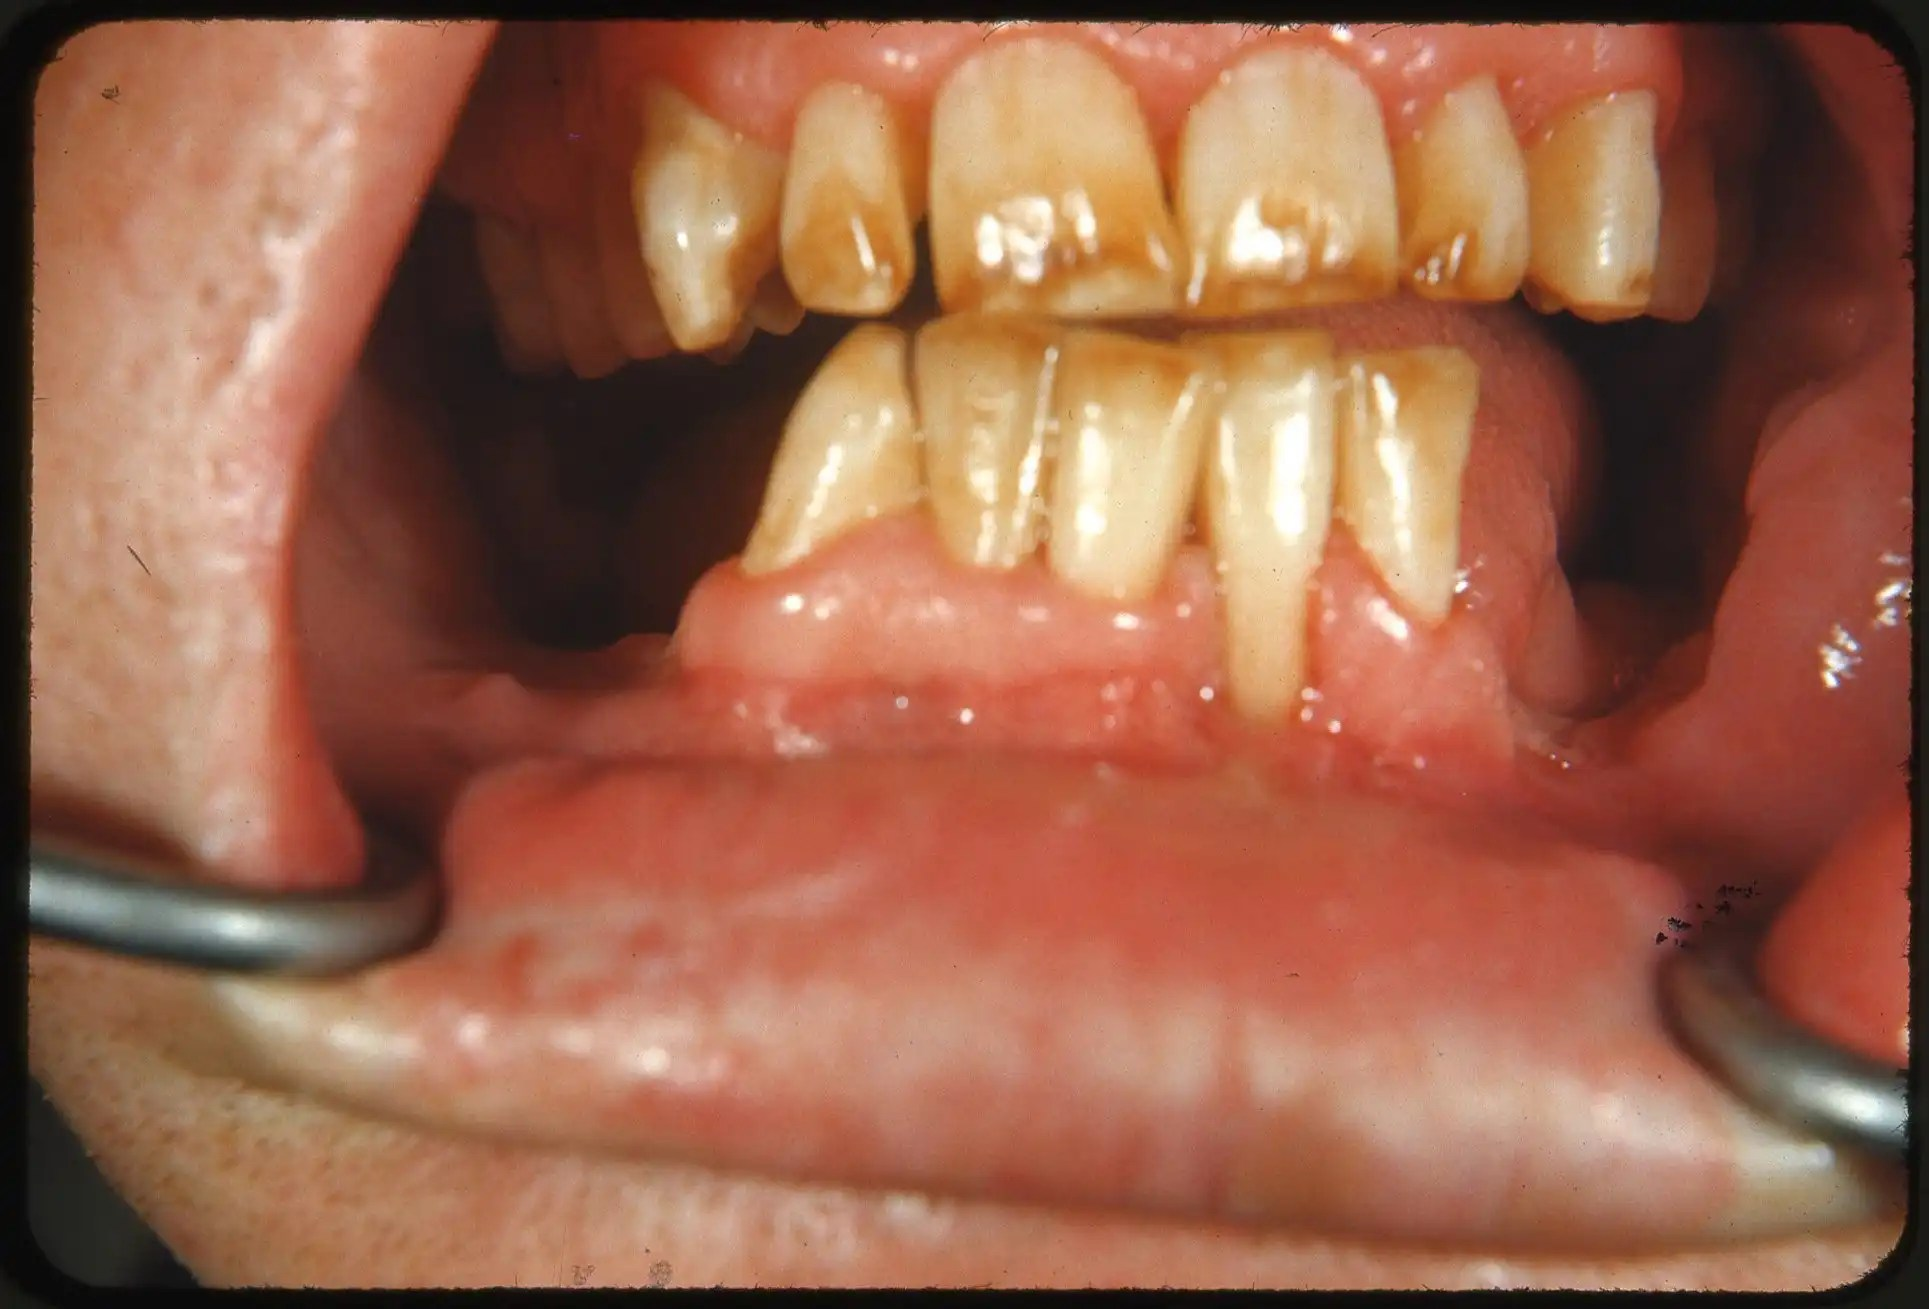 Tooth discoloration; what causes it